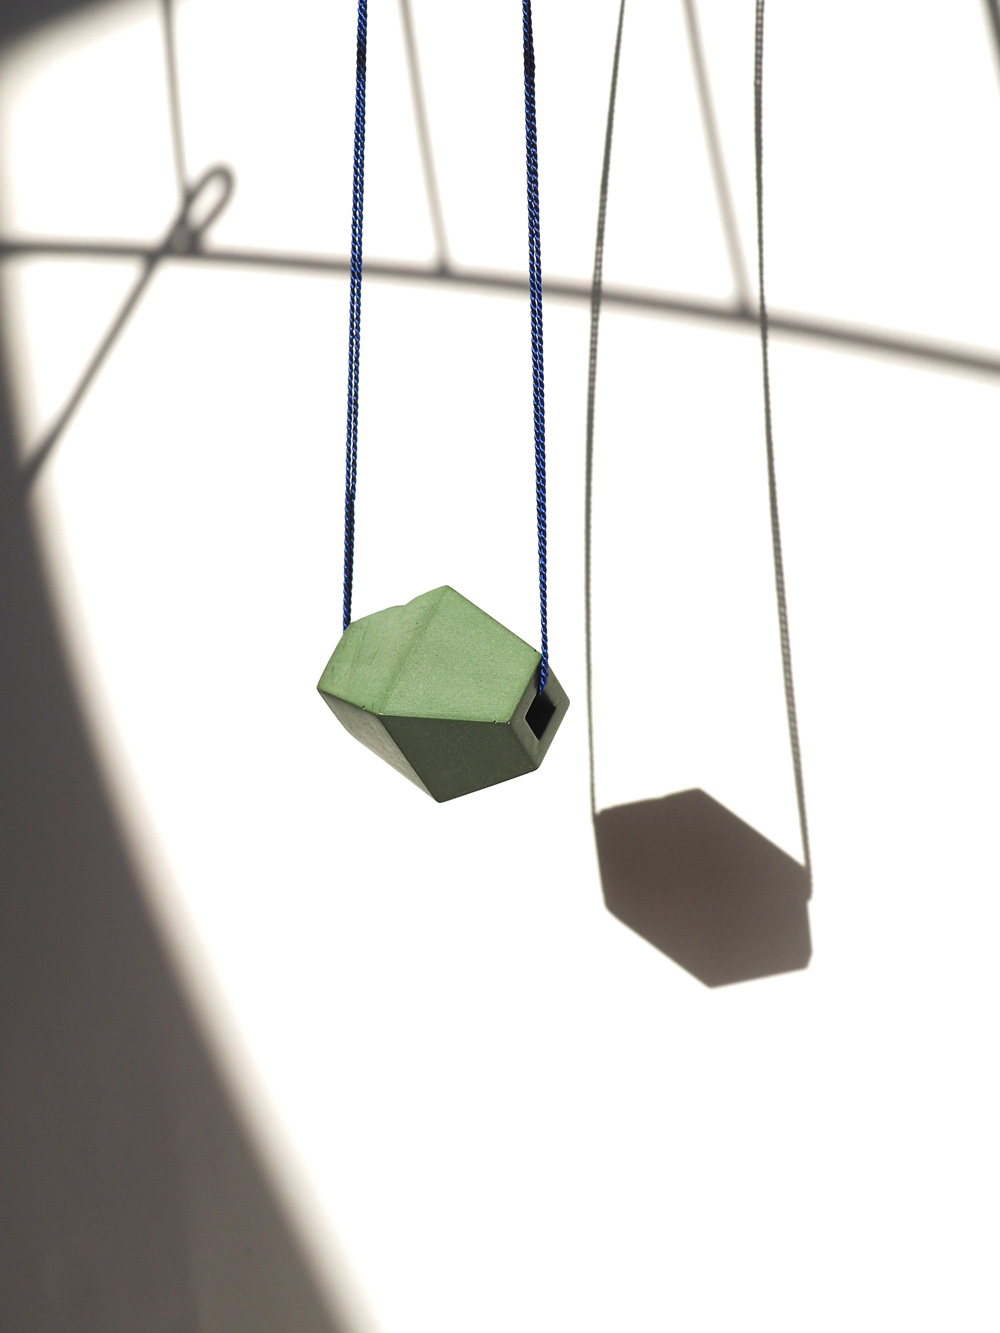 WEB Green Trap NKL hanging.jpg